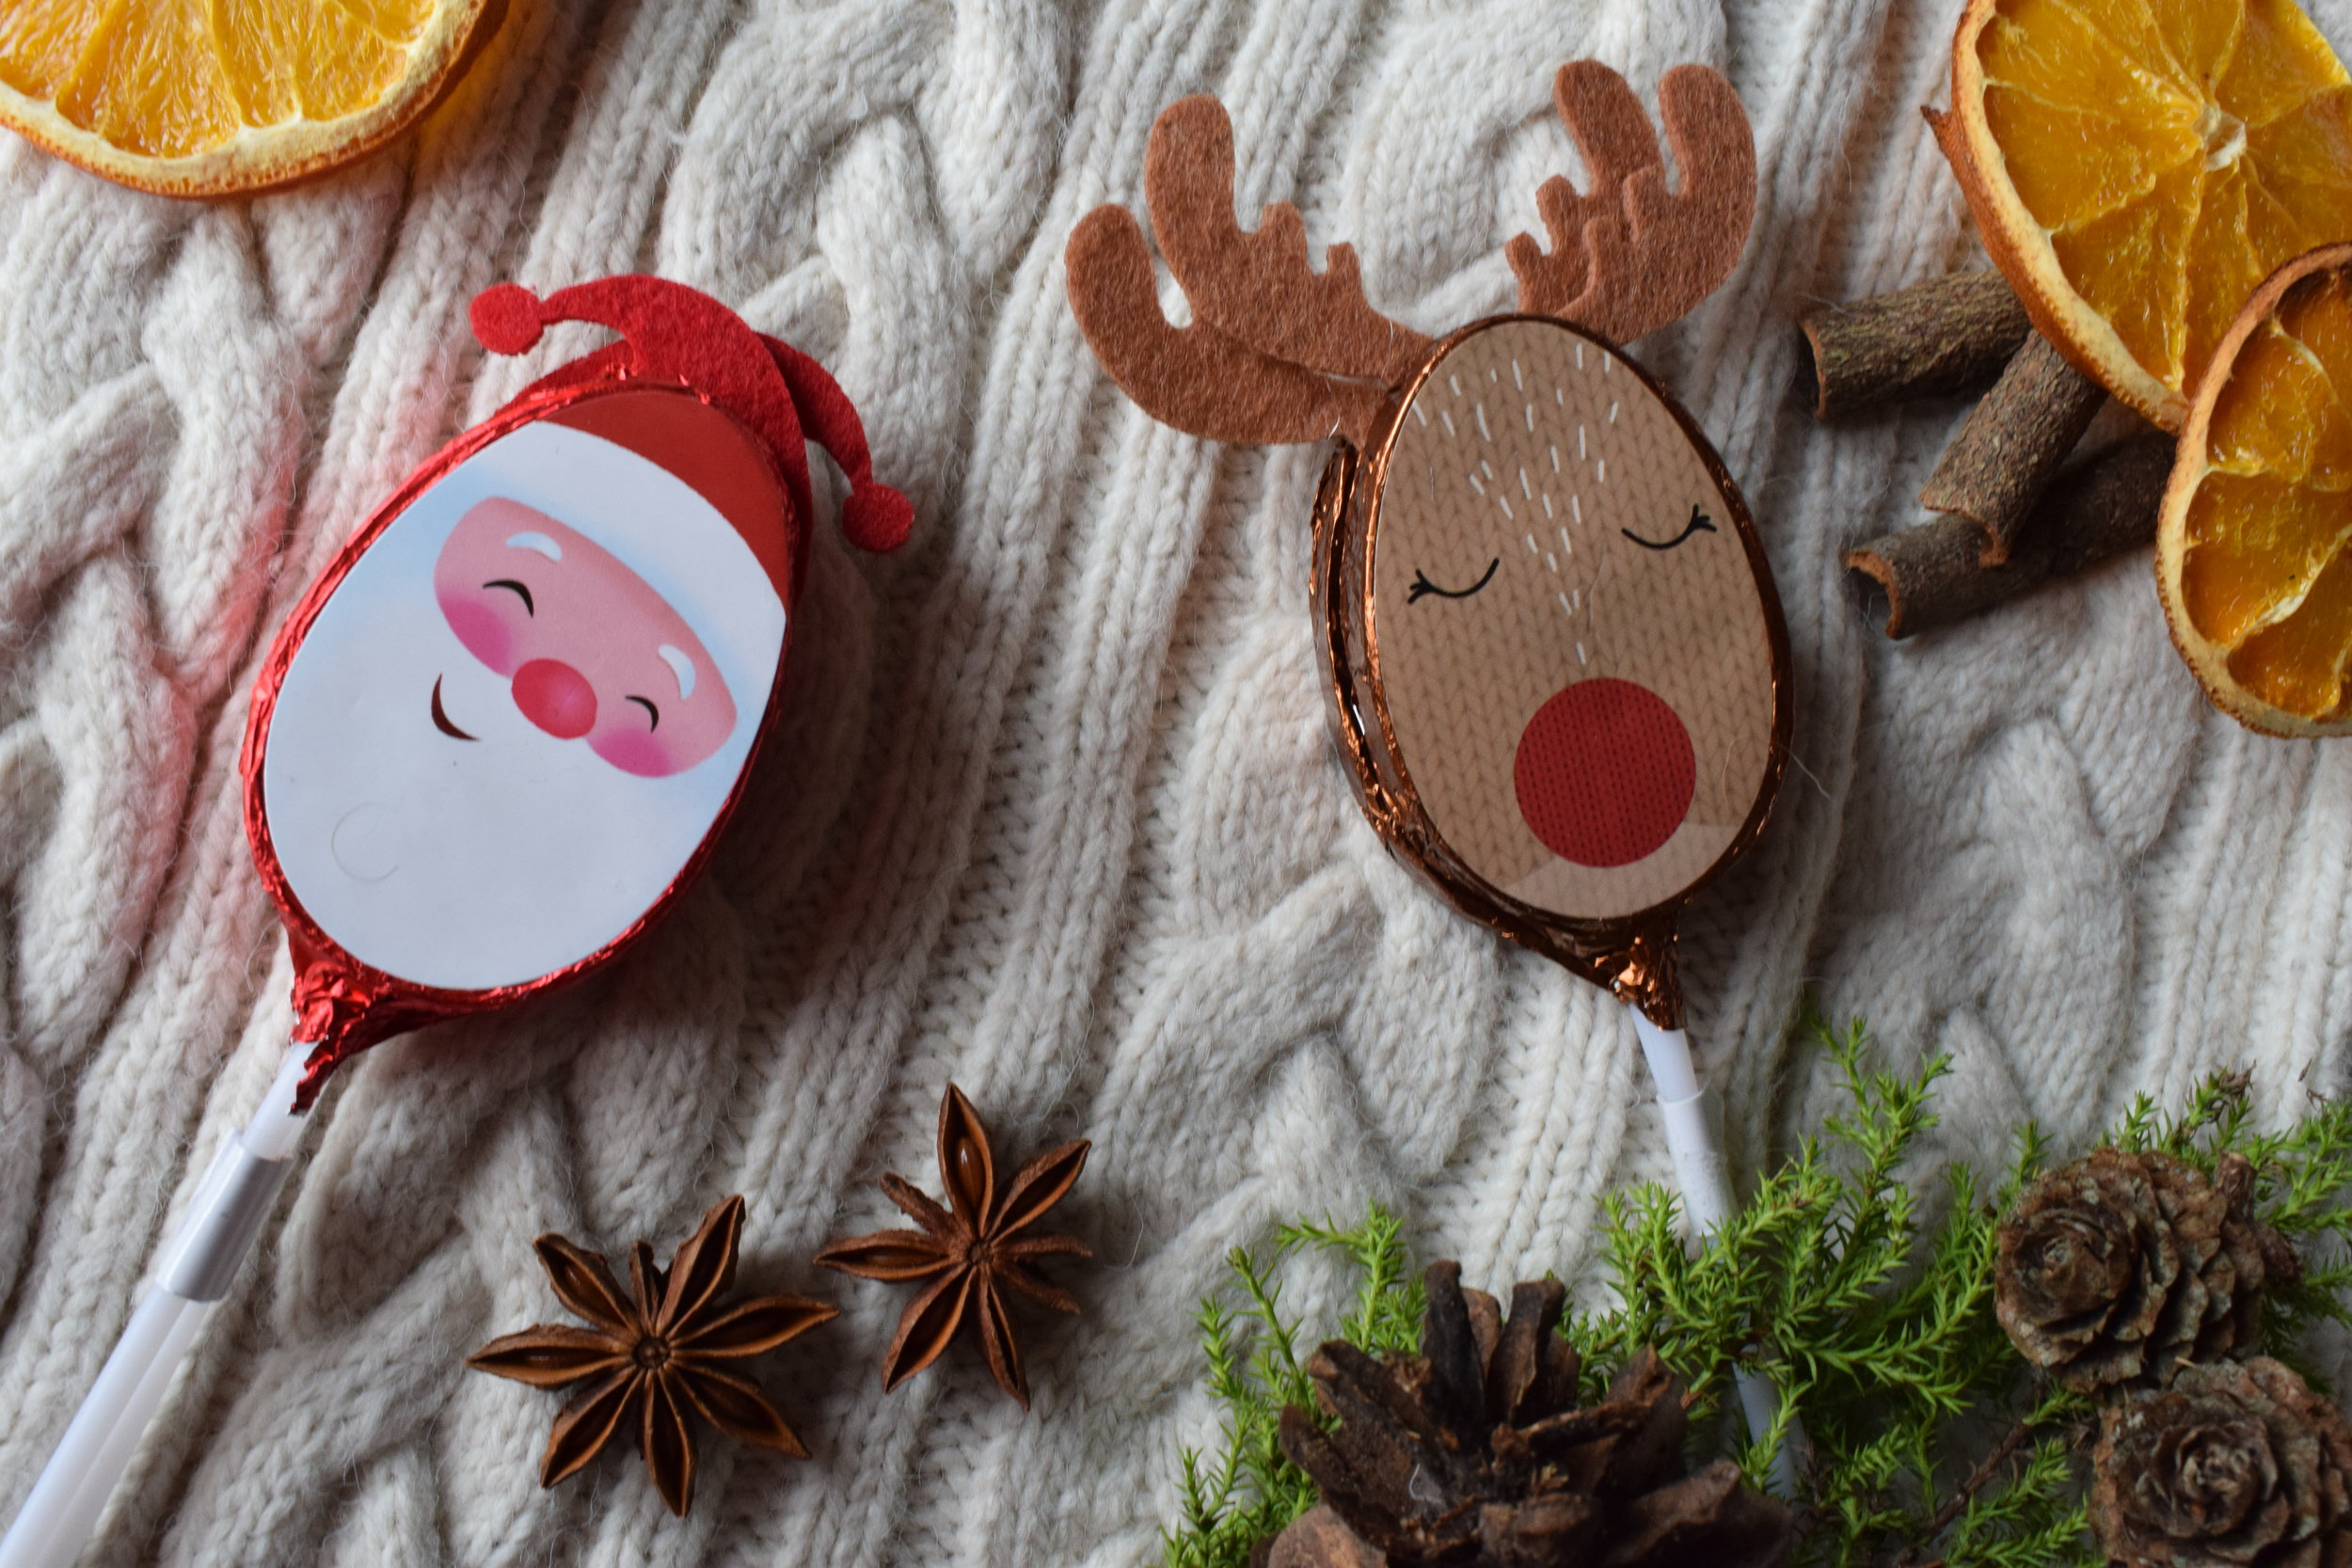 Primark Santa and Reindeer Chocolate Lolly Pops Me Becoming Mum's Stocking Fillers for Under 5s